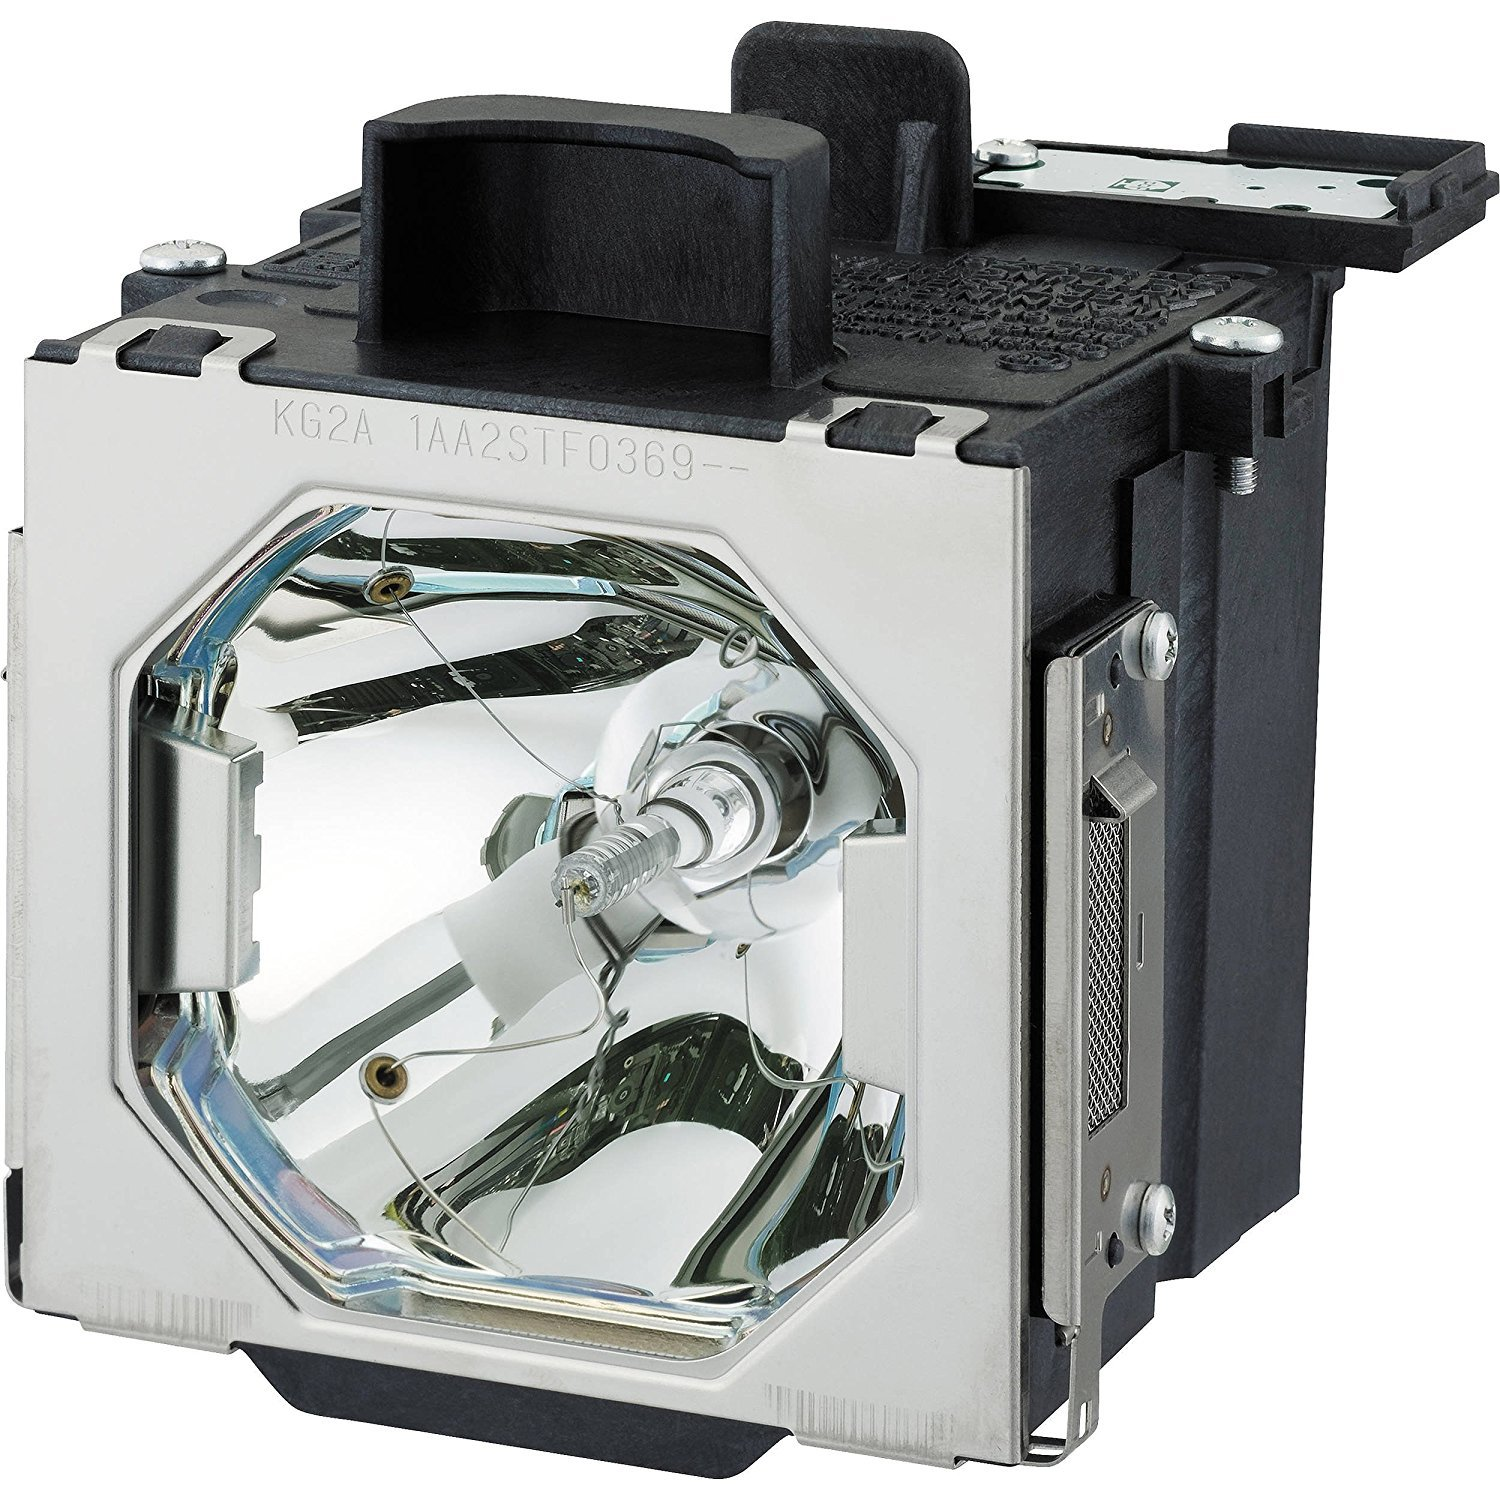 SpArc Platinum for Sony VPL-CH373 Projector Lamp with Enclosure Original Philips Bulb Inside